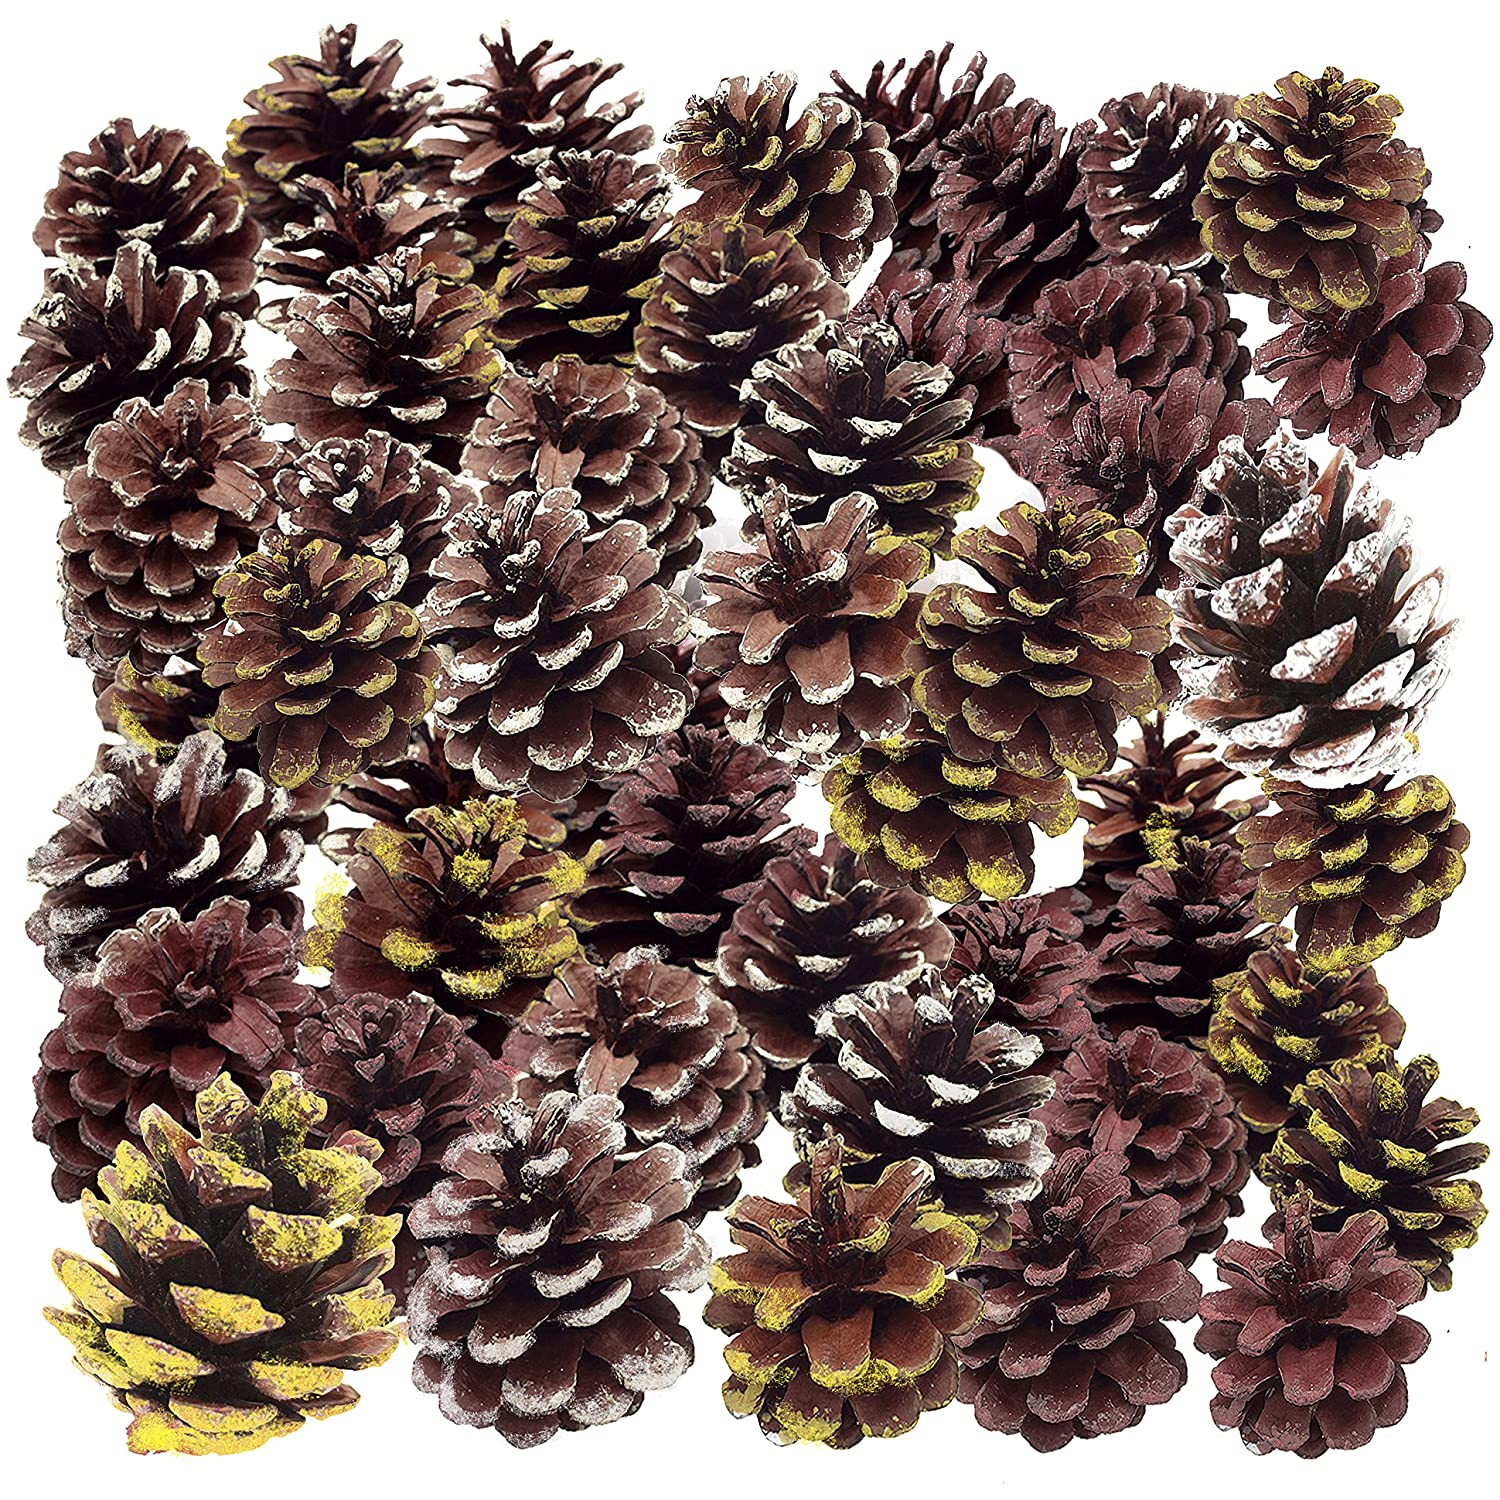 Large 4 Pine Cones. Thanksgiving Home Decoration Set. Use it Harvest Pumpkins Gourds Pinecones Leaves to Decorate Make Your own Holiday Wreath Centerpiece. Fall Autumn Wedding Décor ECP